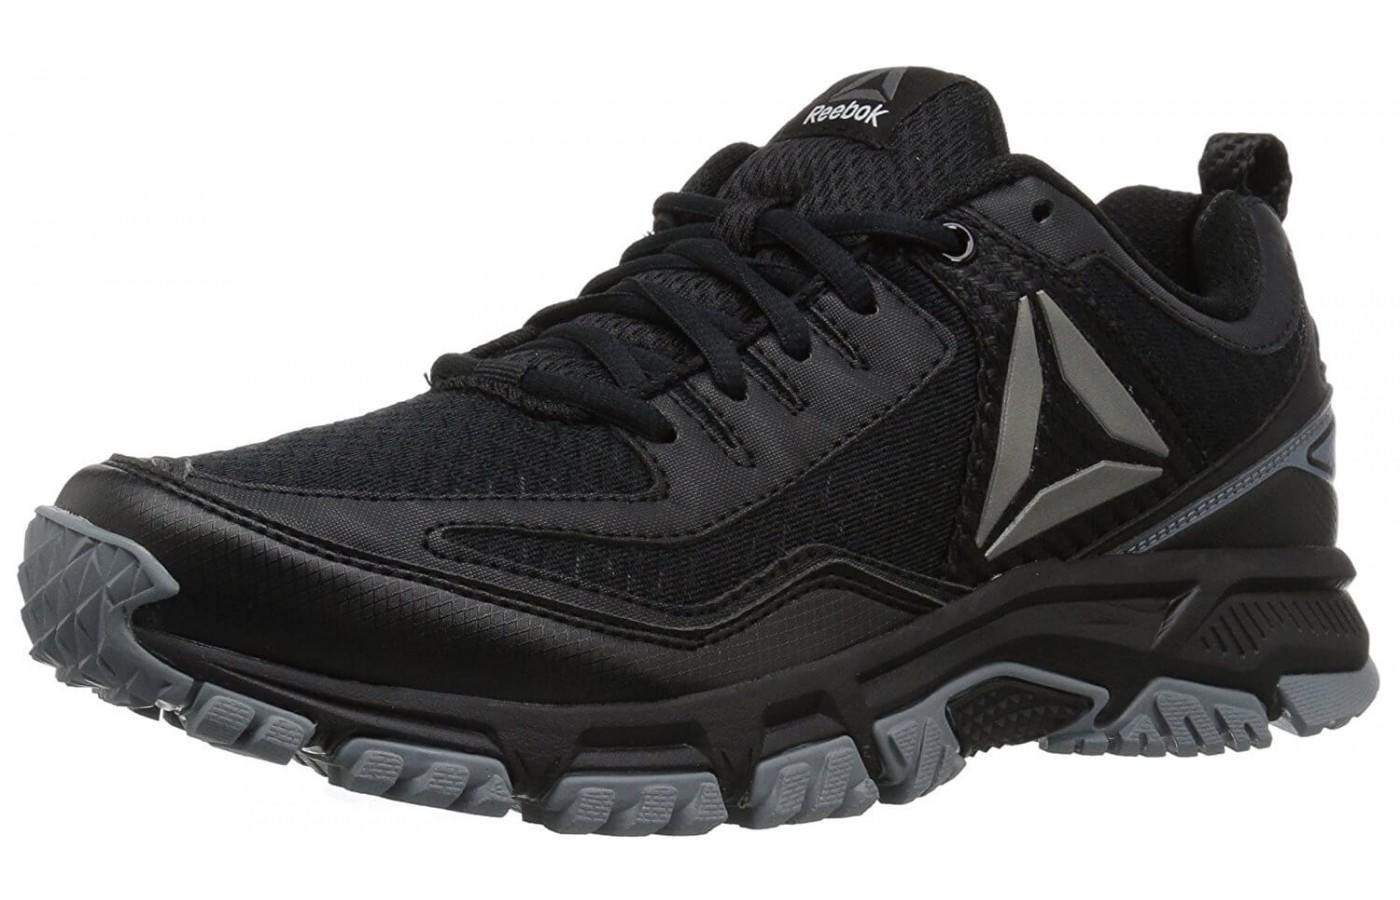 Reebok Ridgerider Trail 2.0 in all-black version for men